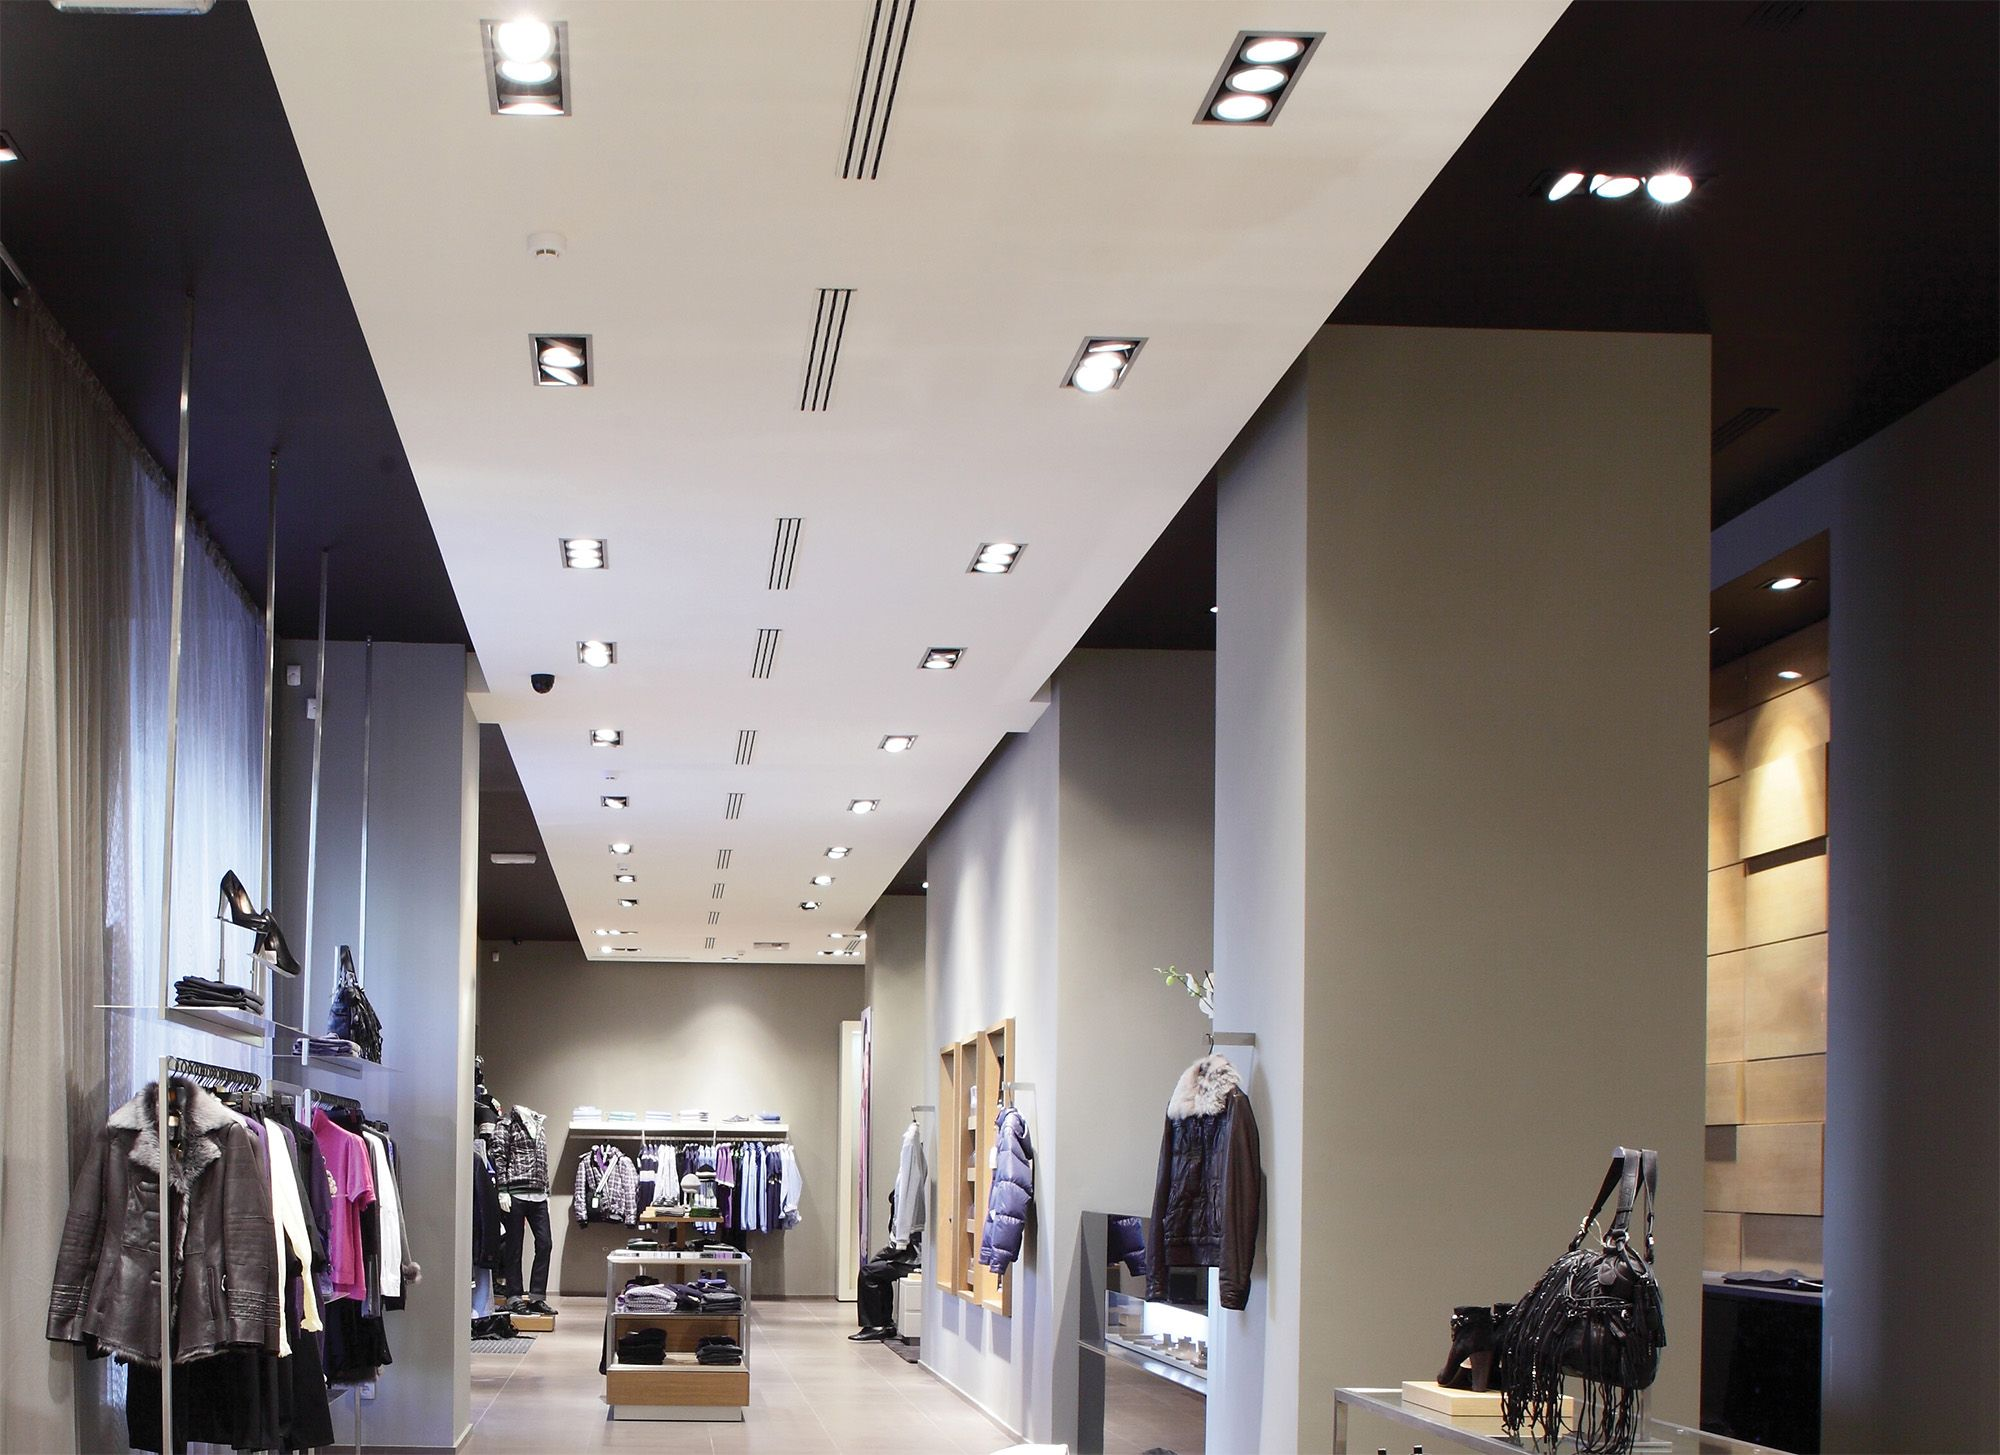 use multiple recessed lighting for retail spaces. #interior